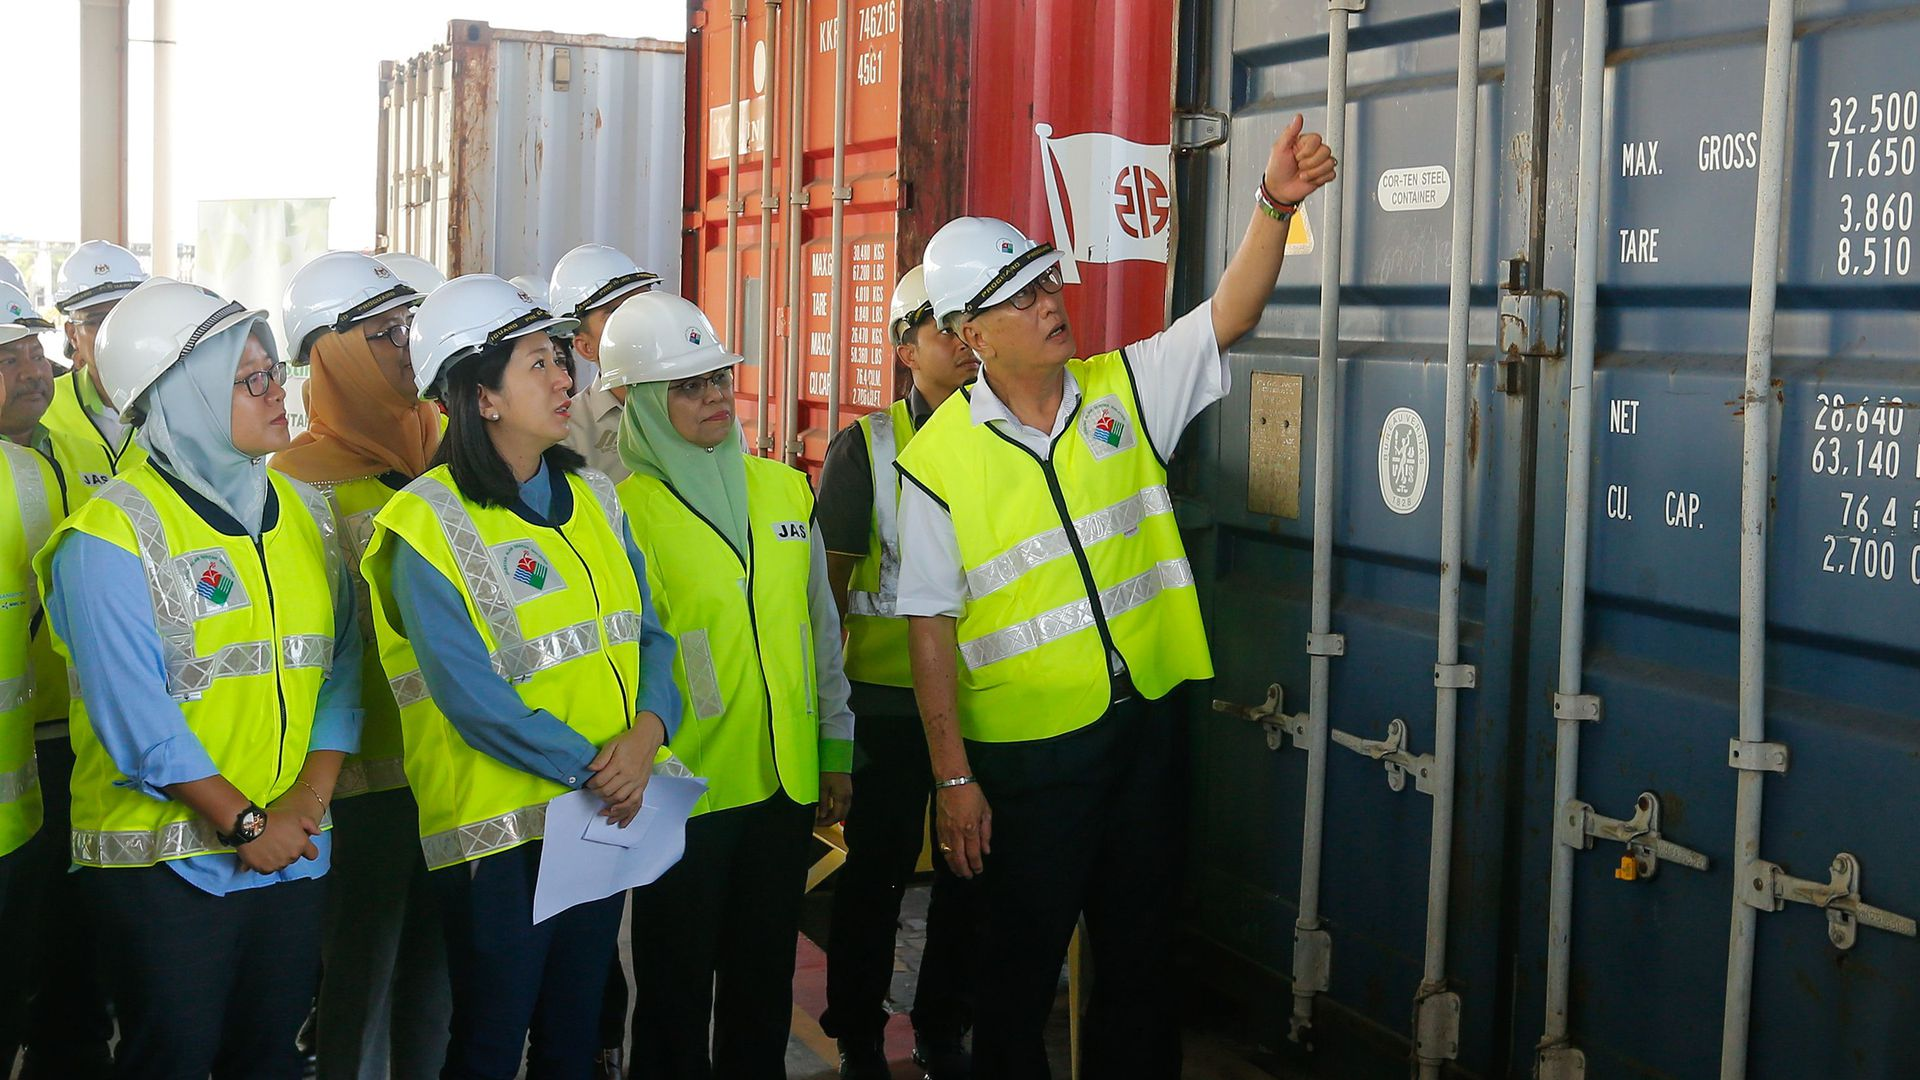 Malaysian Environment Minister Yeo Bee Yin (front 2nd L) and officials inspect a container containing plastic waste shipment on January 20, 2020 before sending back